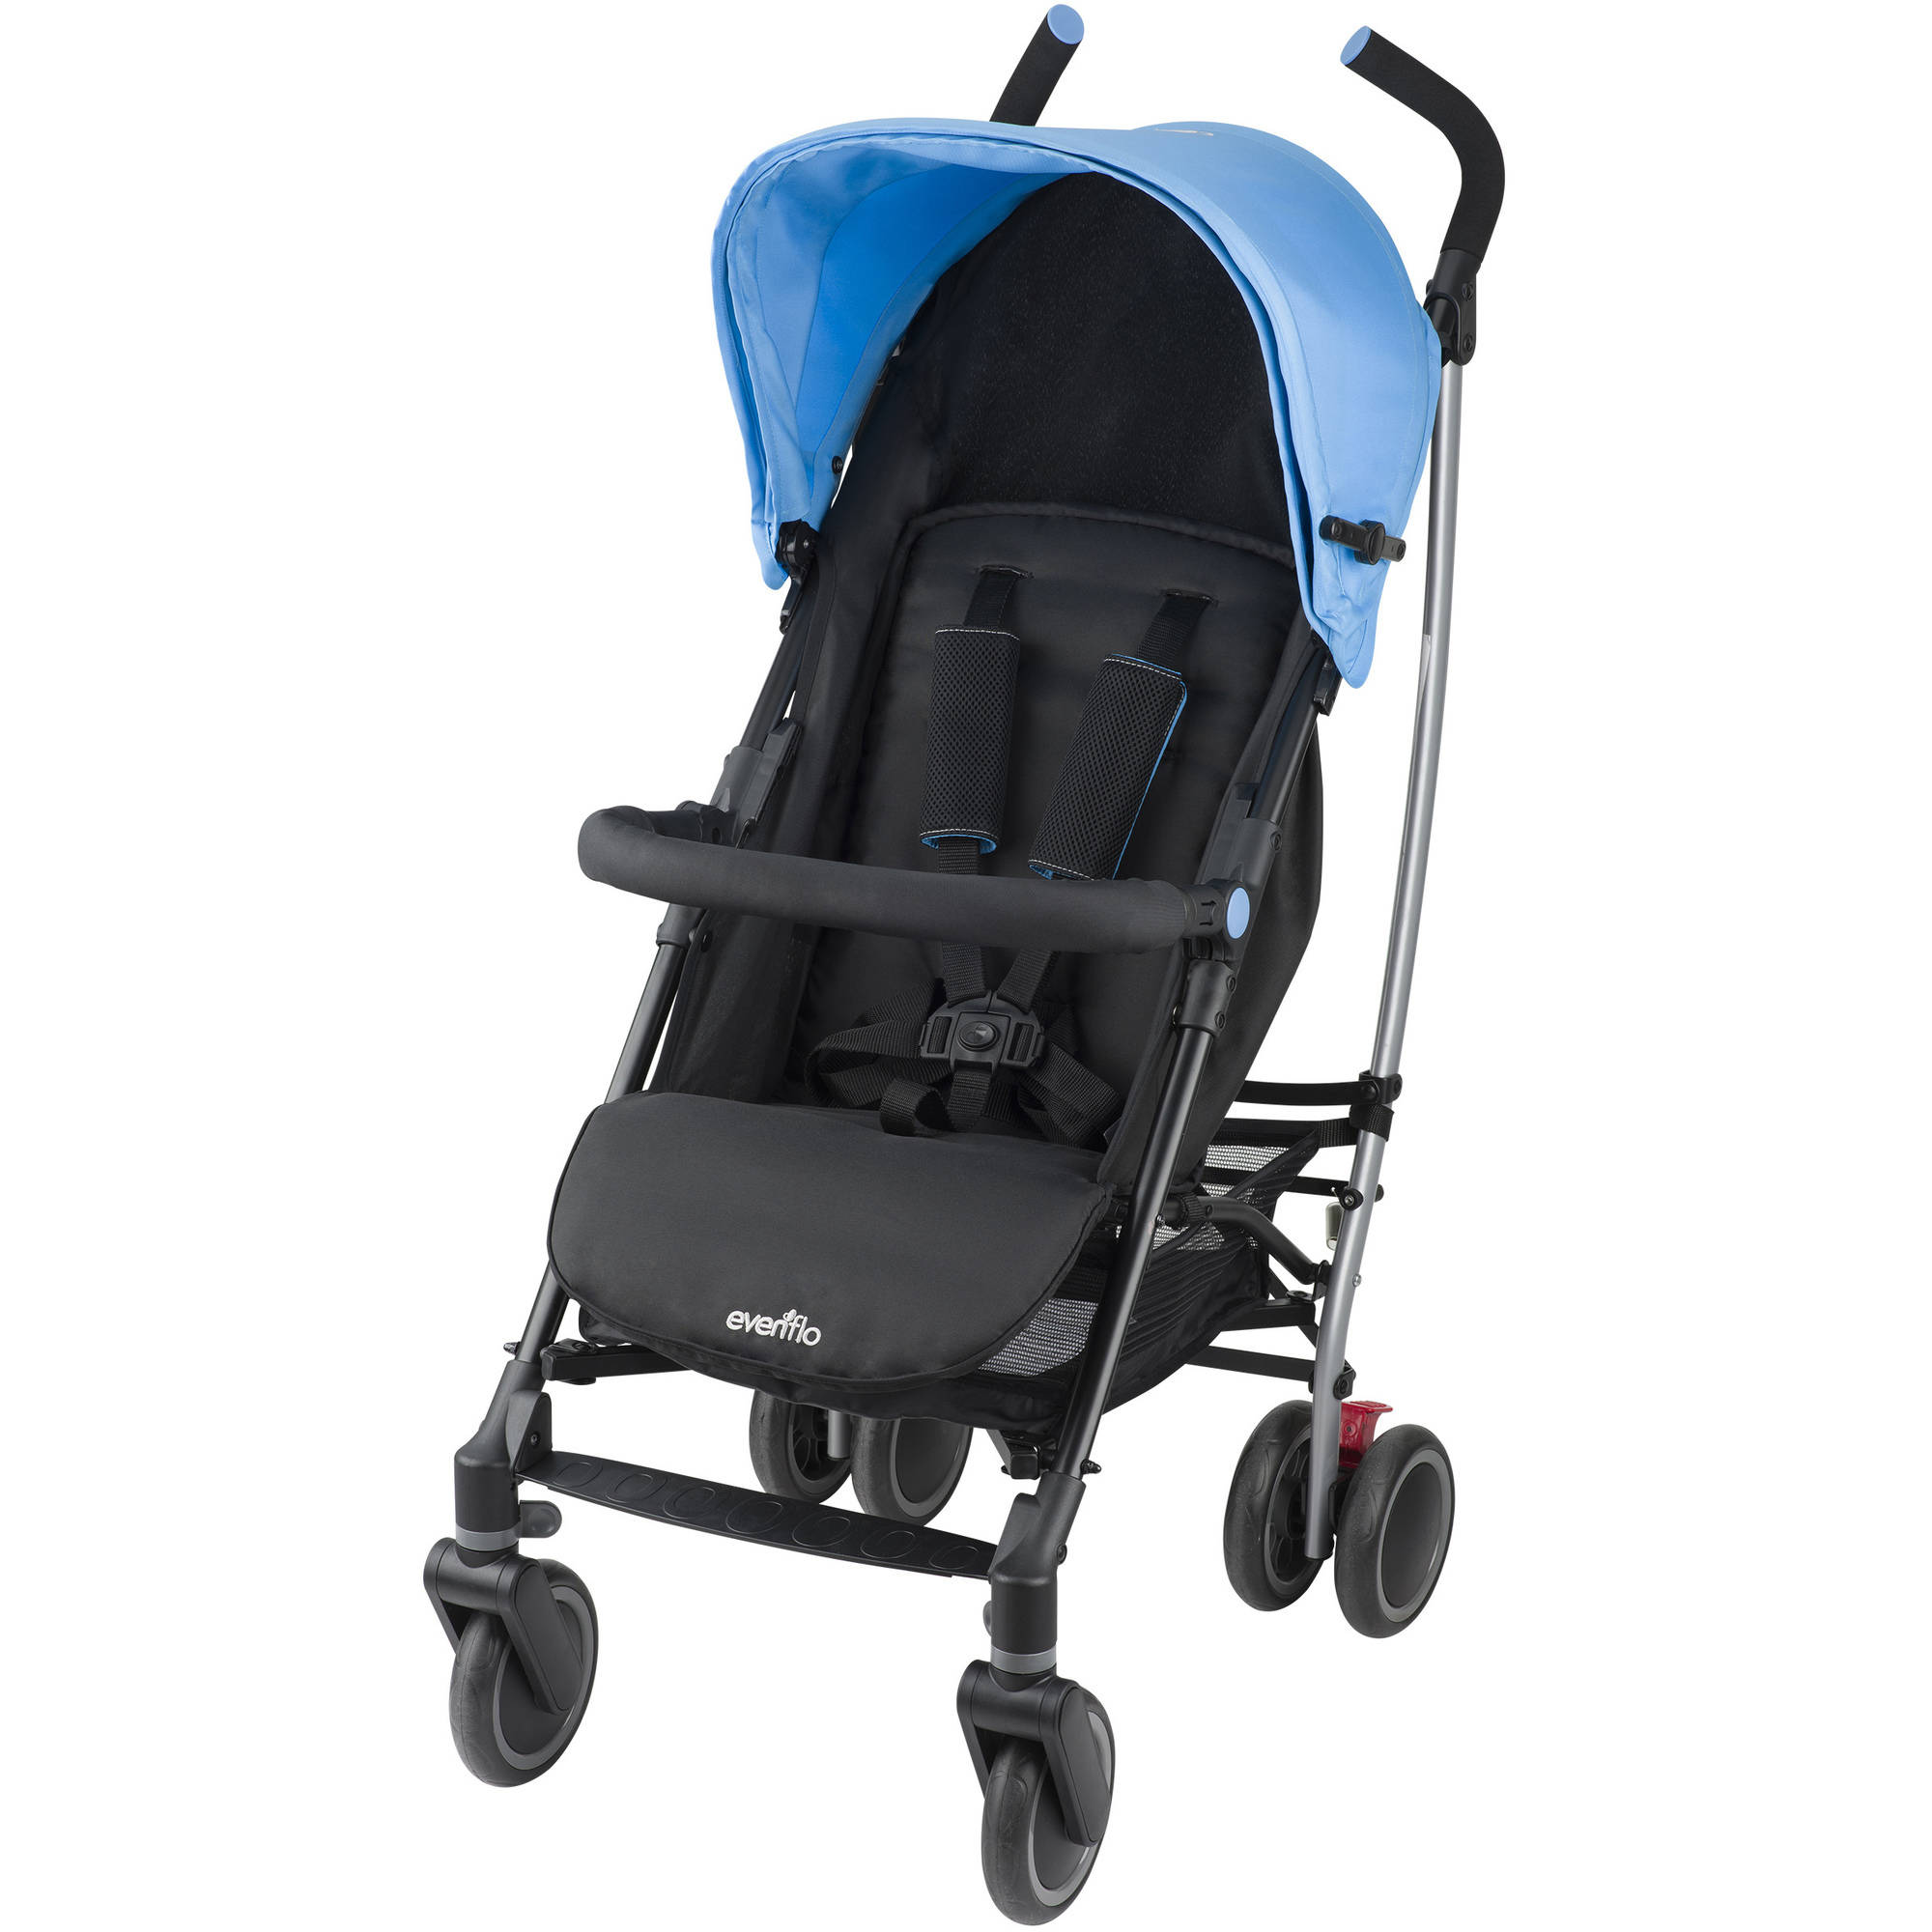 Evenflo Cambridge Stroller, Sky Blue